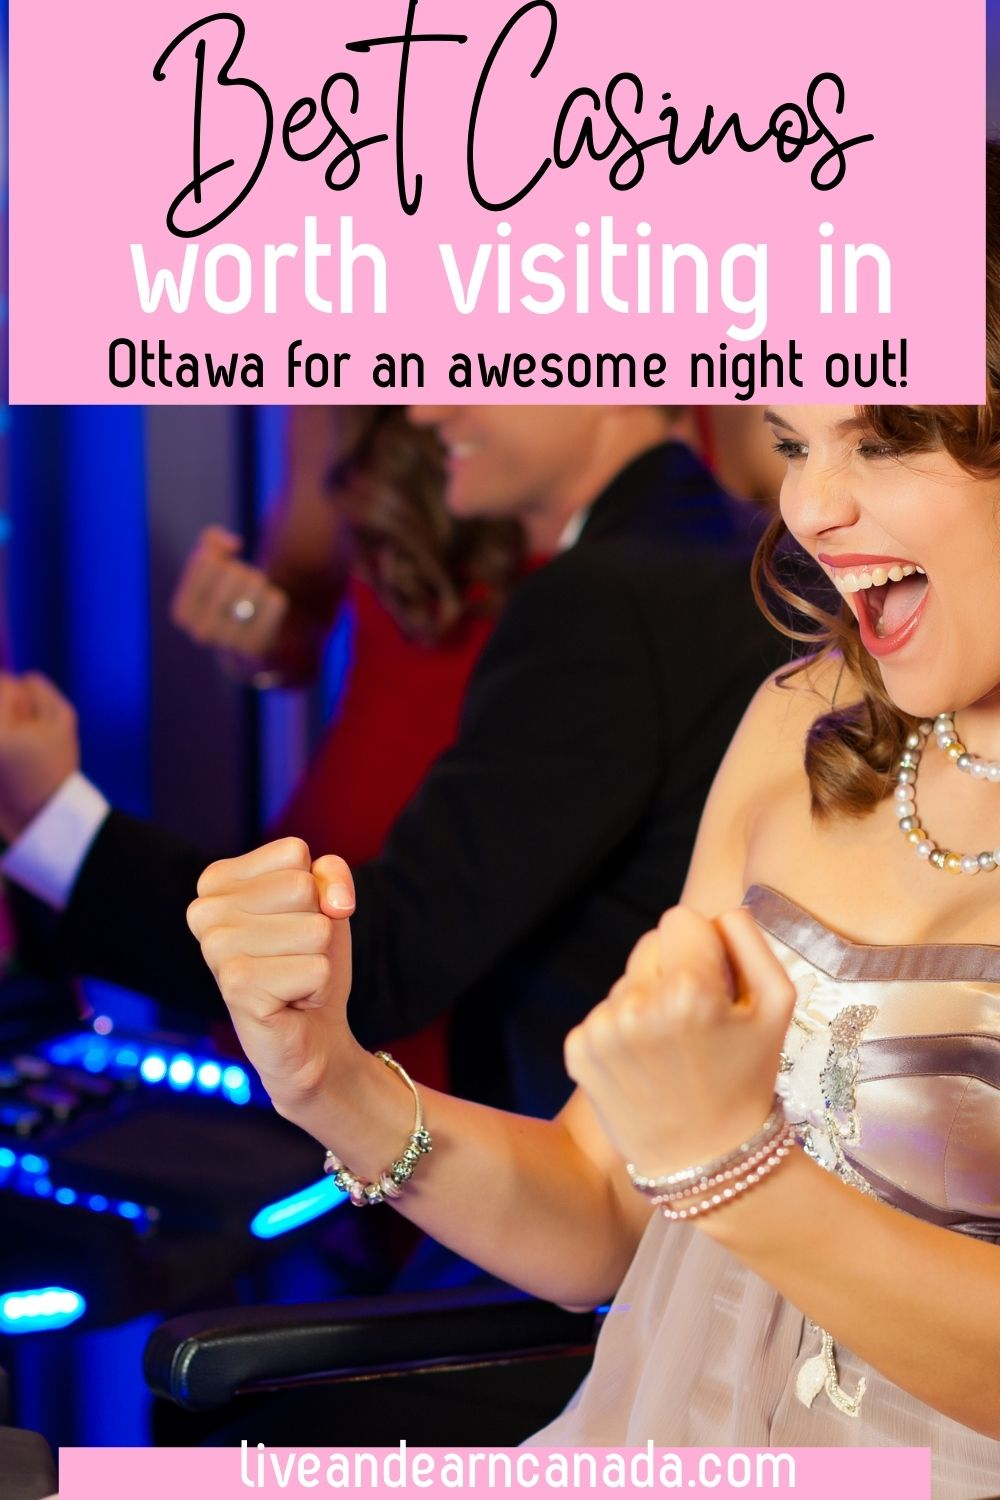 If you are looking for the best Casinos in Ottawa, then click here. My favourite casino is Casino Lac Leamy located just minutes from Ottawa.